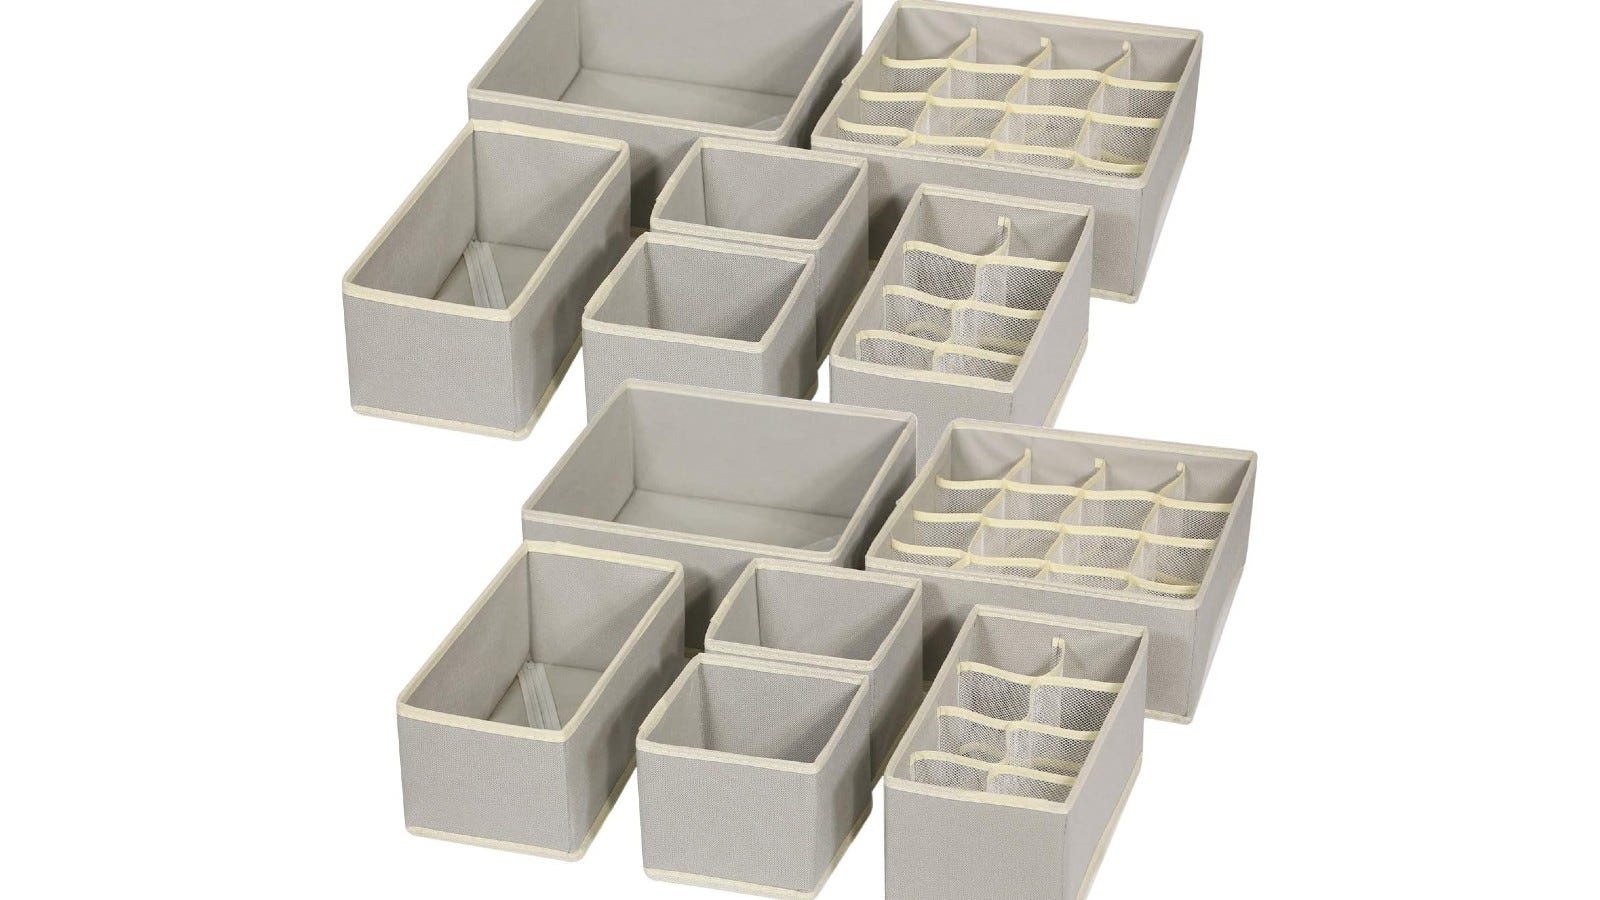 soft gray drawer organizers in different sizes